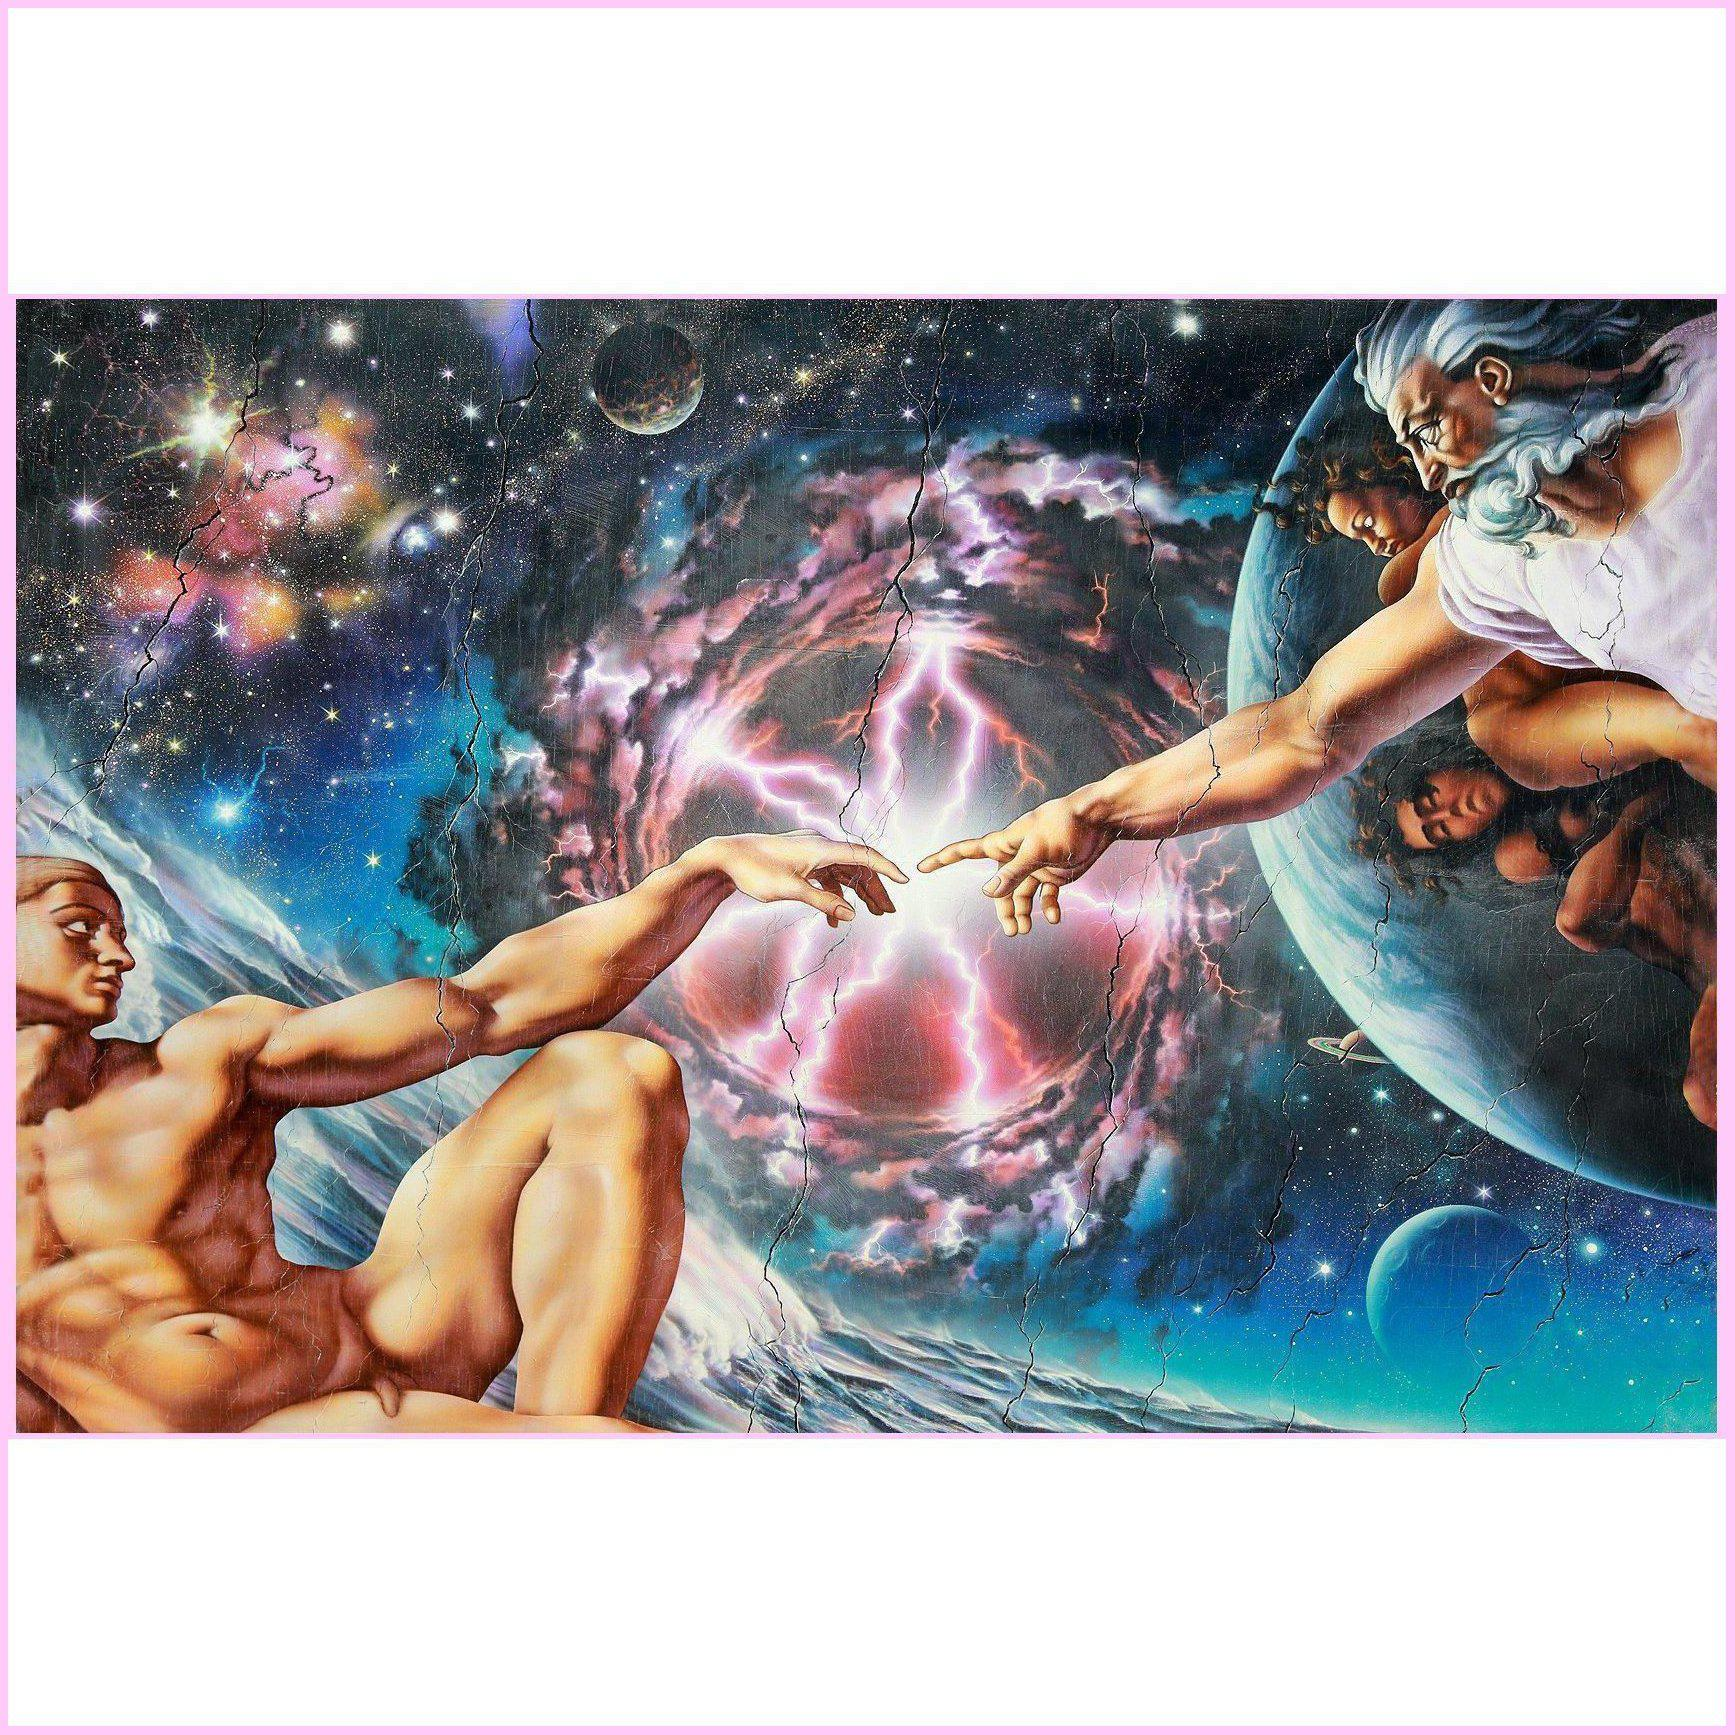 Creation-Diamond Painting Kit USPS-25x40cm (10x16 in)-Square-Heartful Diamonds